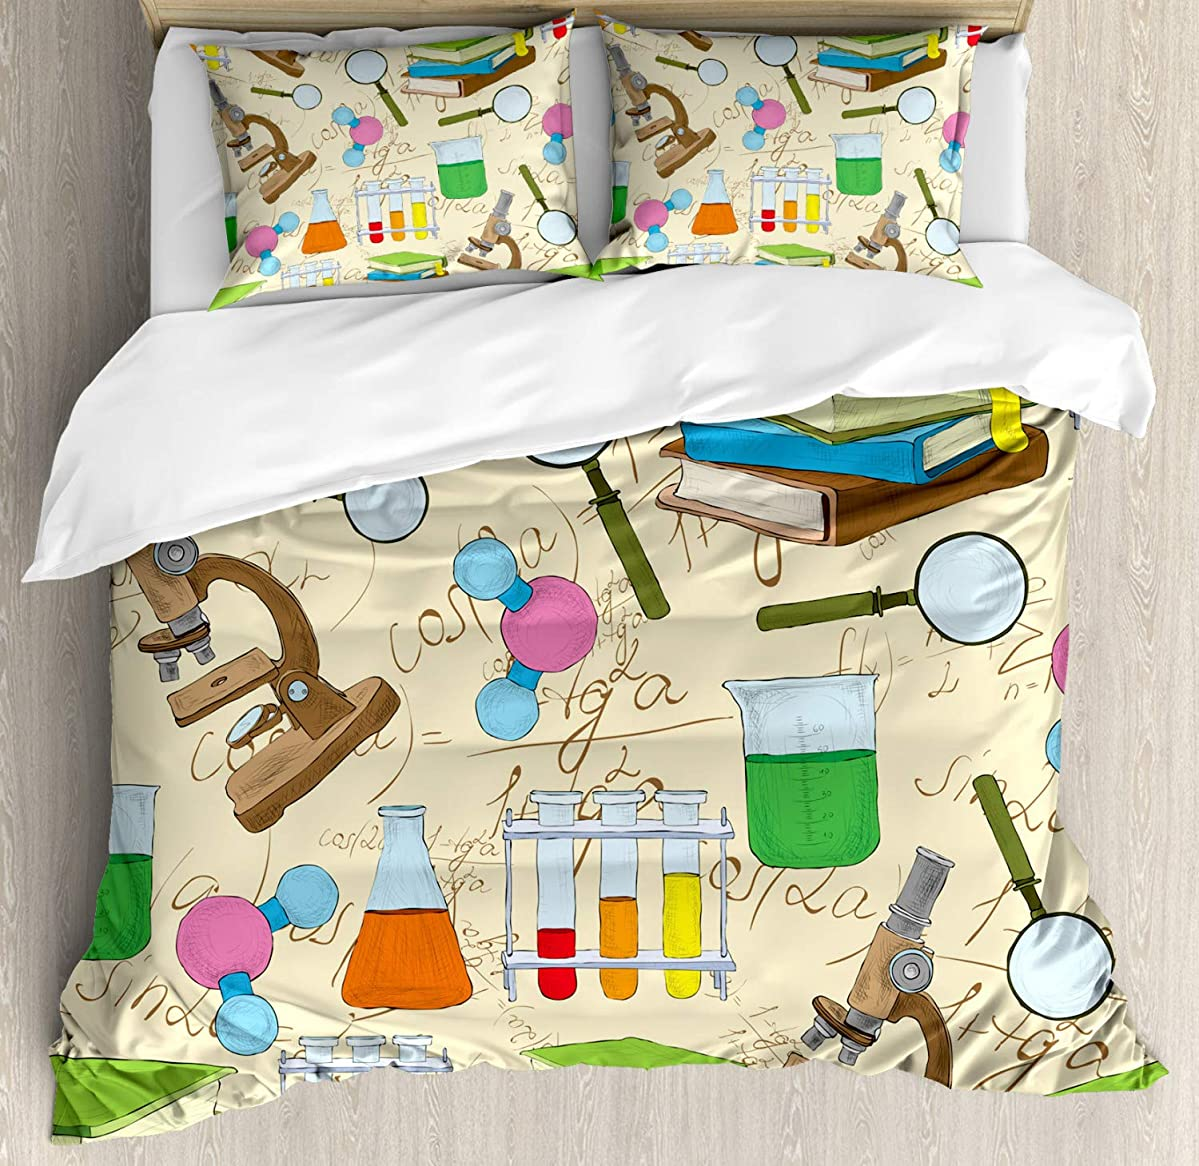 Ambesonne Kids Duvet Cover Set Queen Size, Science Education Lab Sketch Books Equation Loupe Microscope Molecule Flask Print, Decorative 3 Piece Bedding Set with 2 Pillow Shams, Multicolor